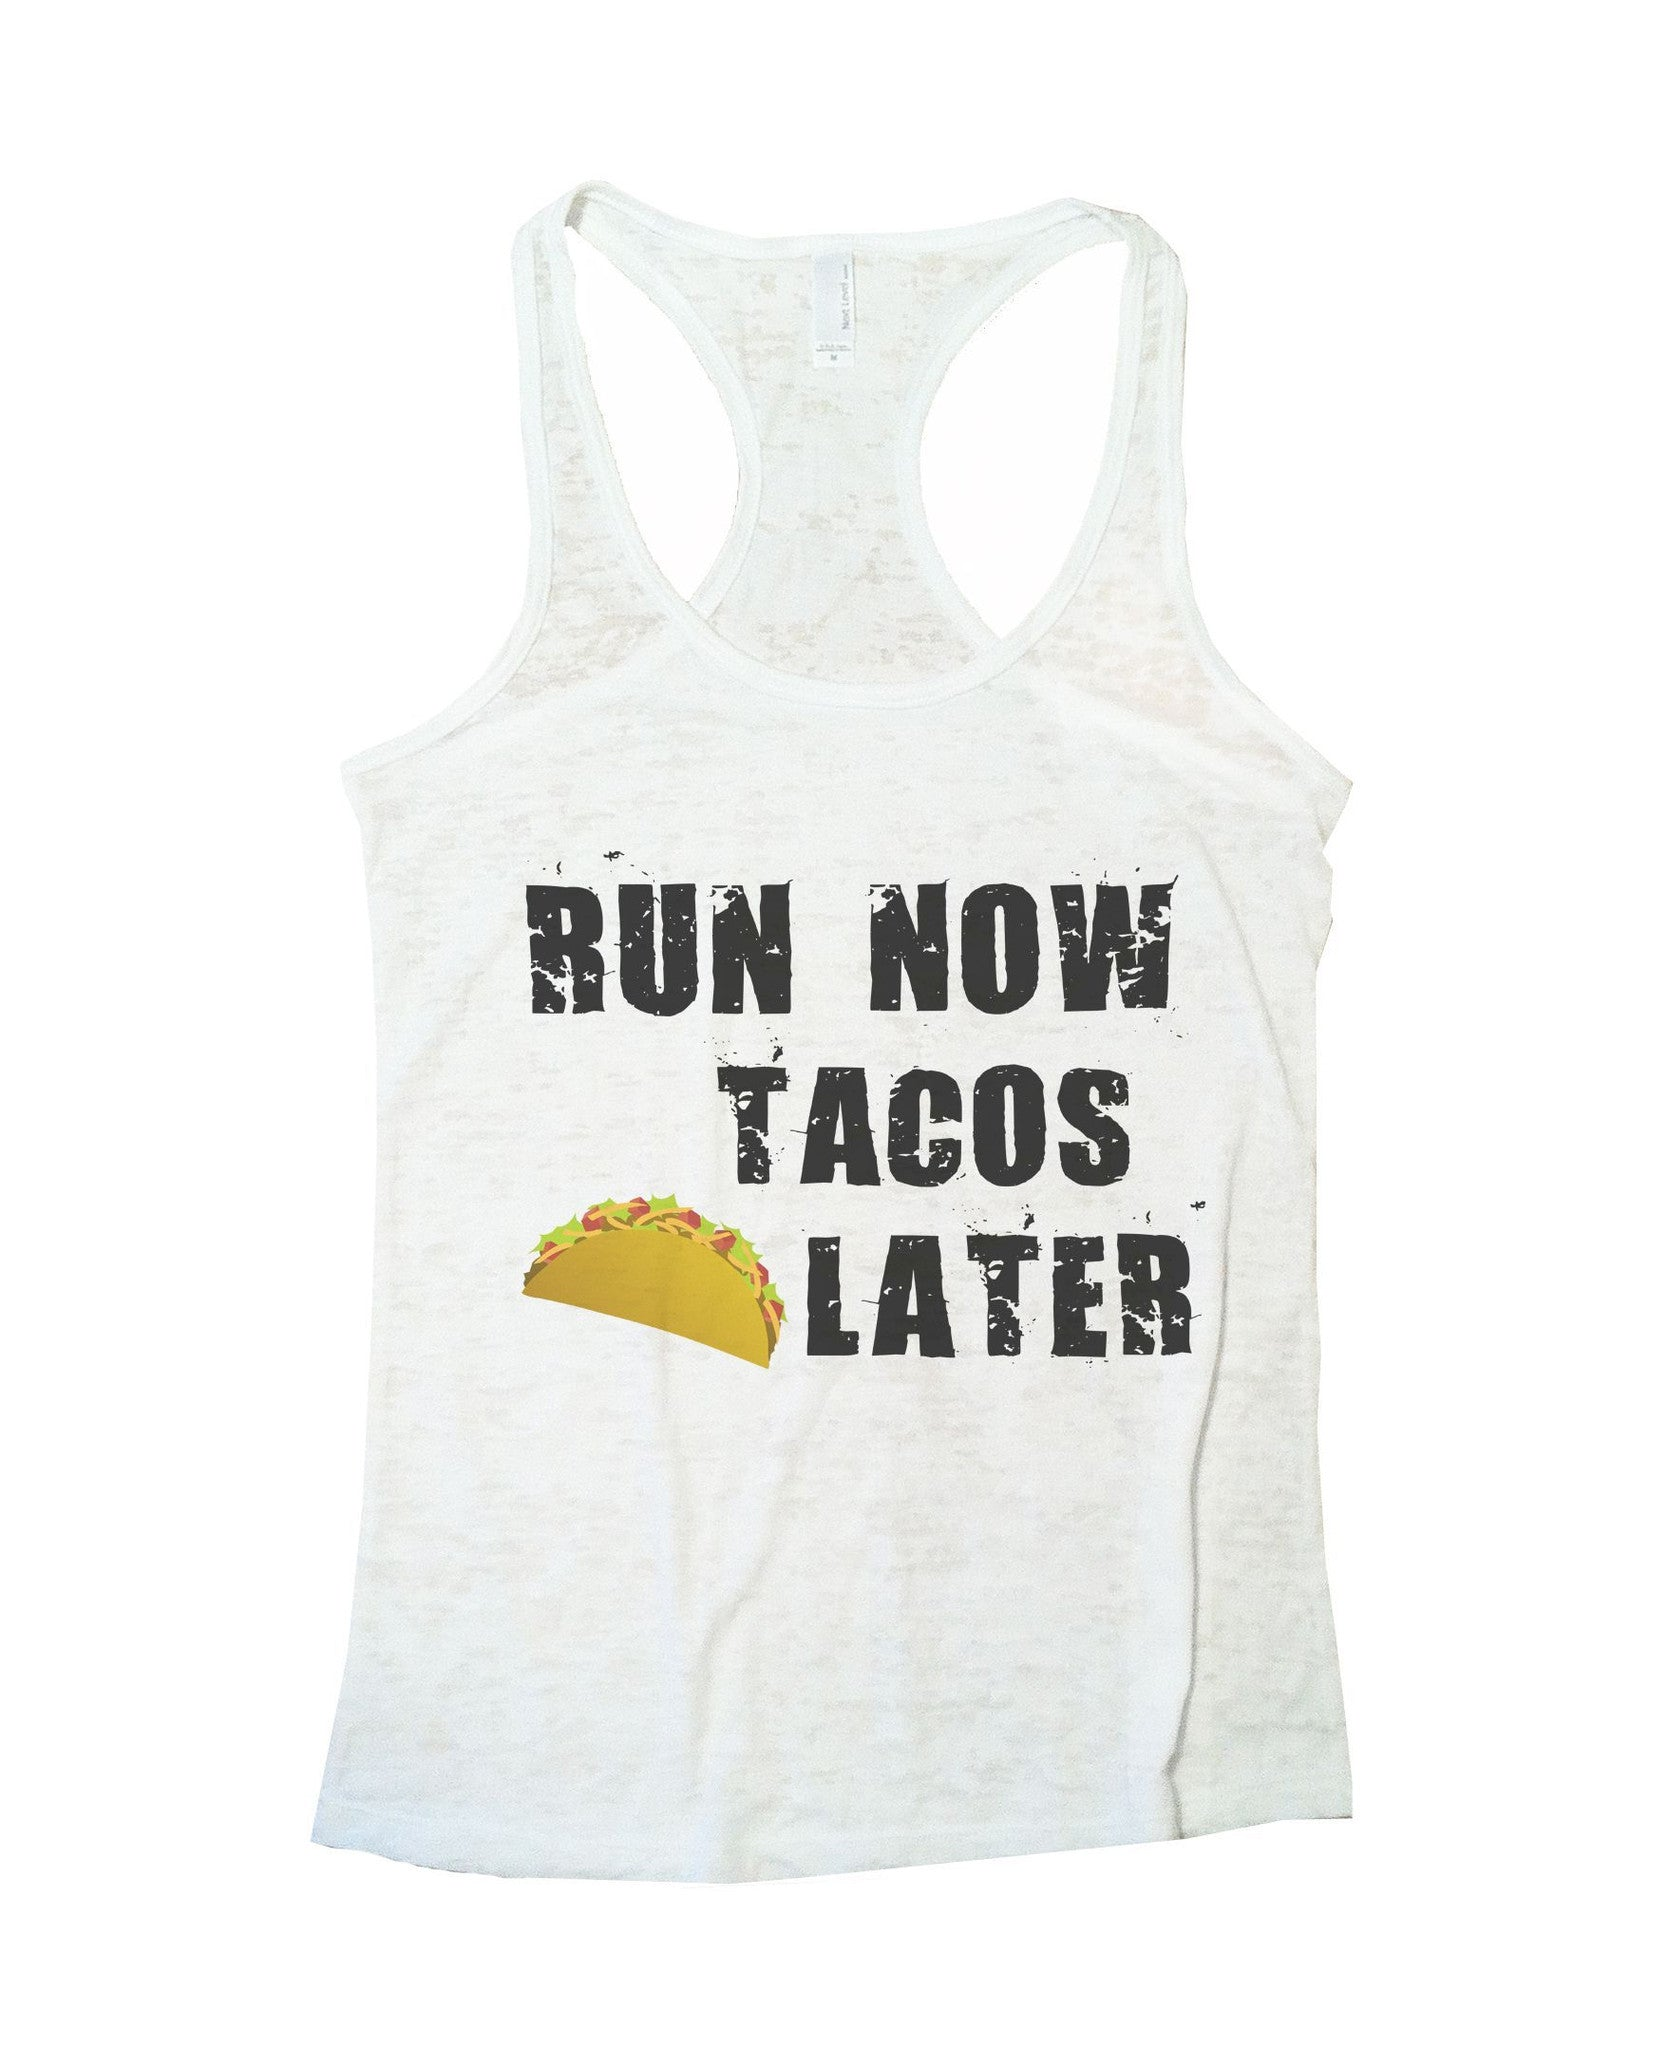 Run Now Tacos Later Burnout Tank Top By BurnoutTankTops.com - 650 - Funny Shirts Tank Tops Burnouts and Triblends  - 5